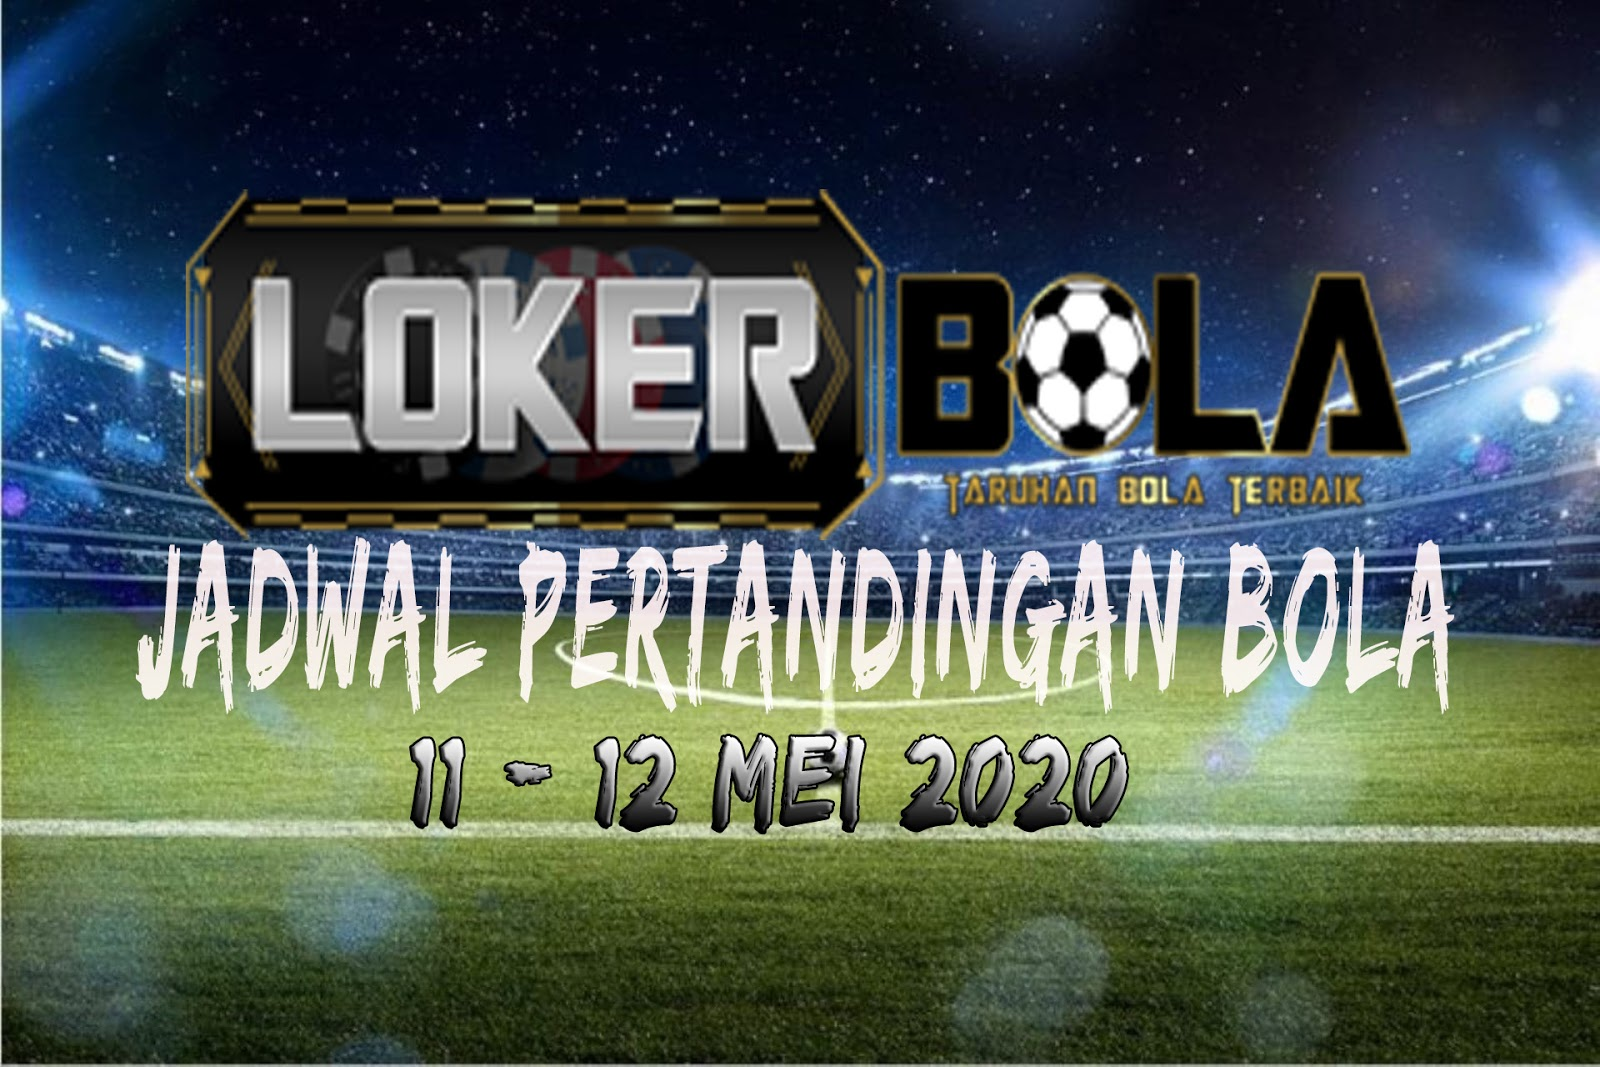 JADWAL PERTANDINGAN BOLA 11 – 12 May 2020